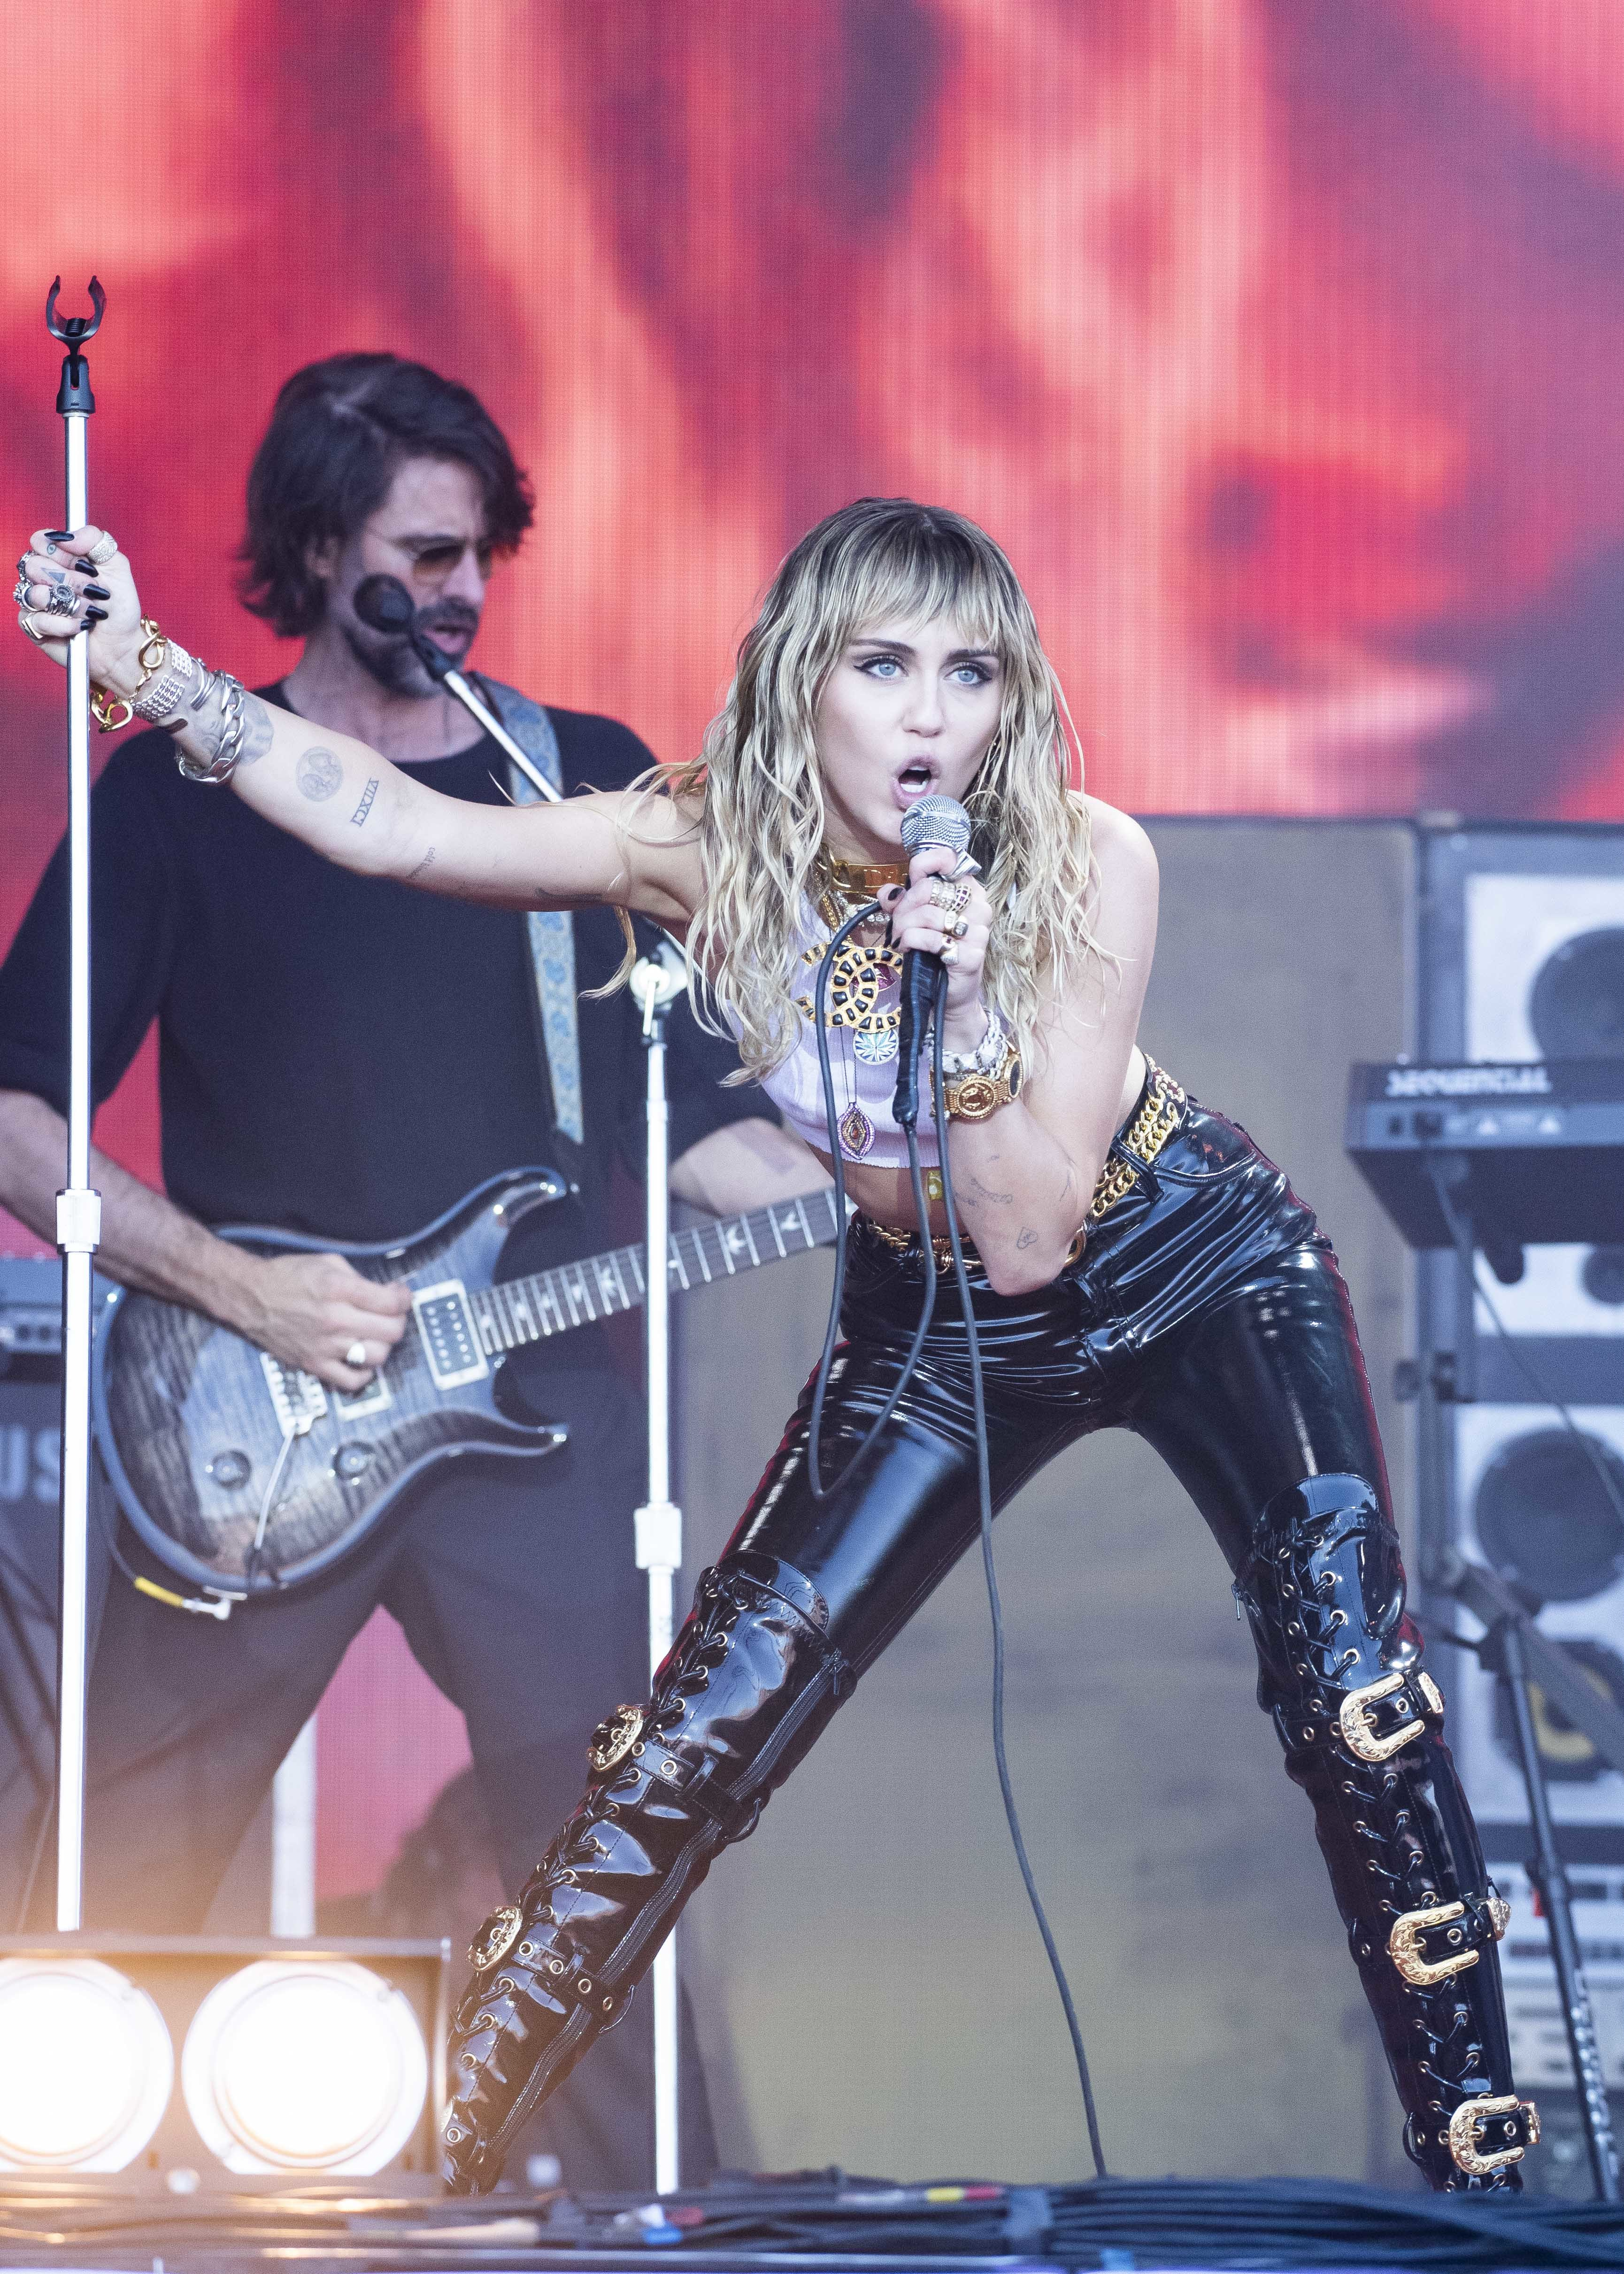 Miley Cyrus performs live on the Pyramid Stage at Worthy Farm, Pilton, Somerset. Picture date: Sunday 30th June 2019.  Photo credit should read:  David Jensen/EMPICS Entertainment